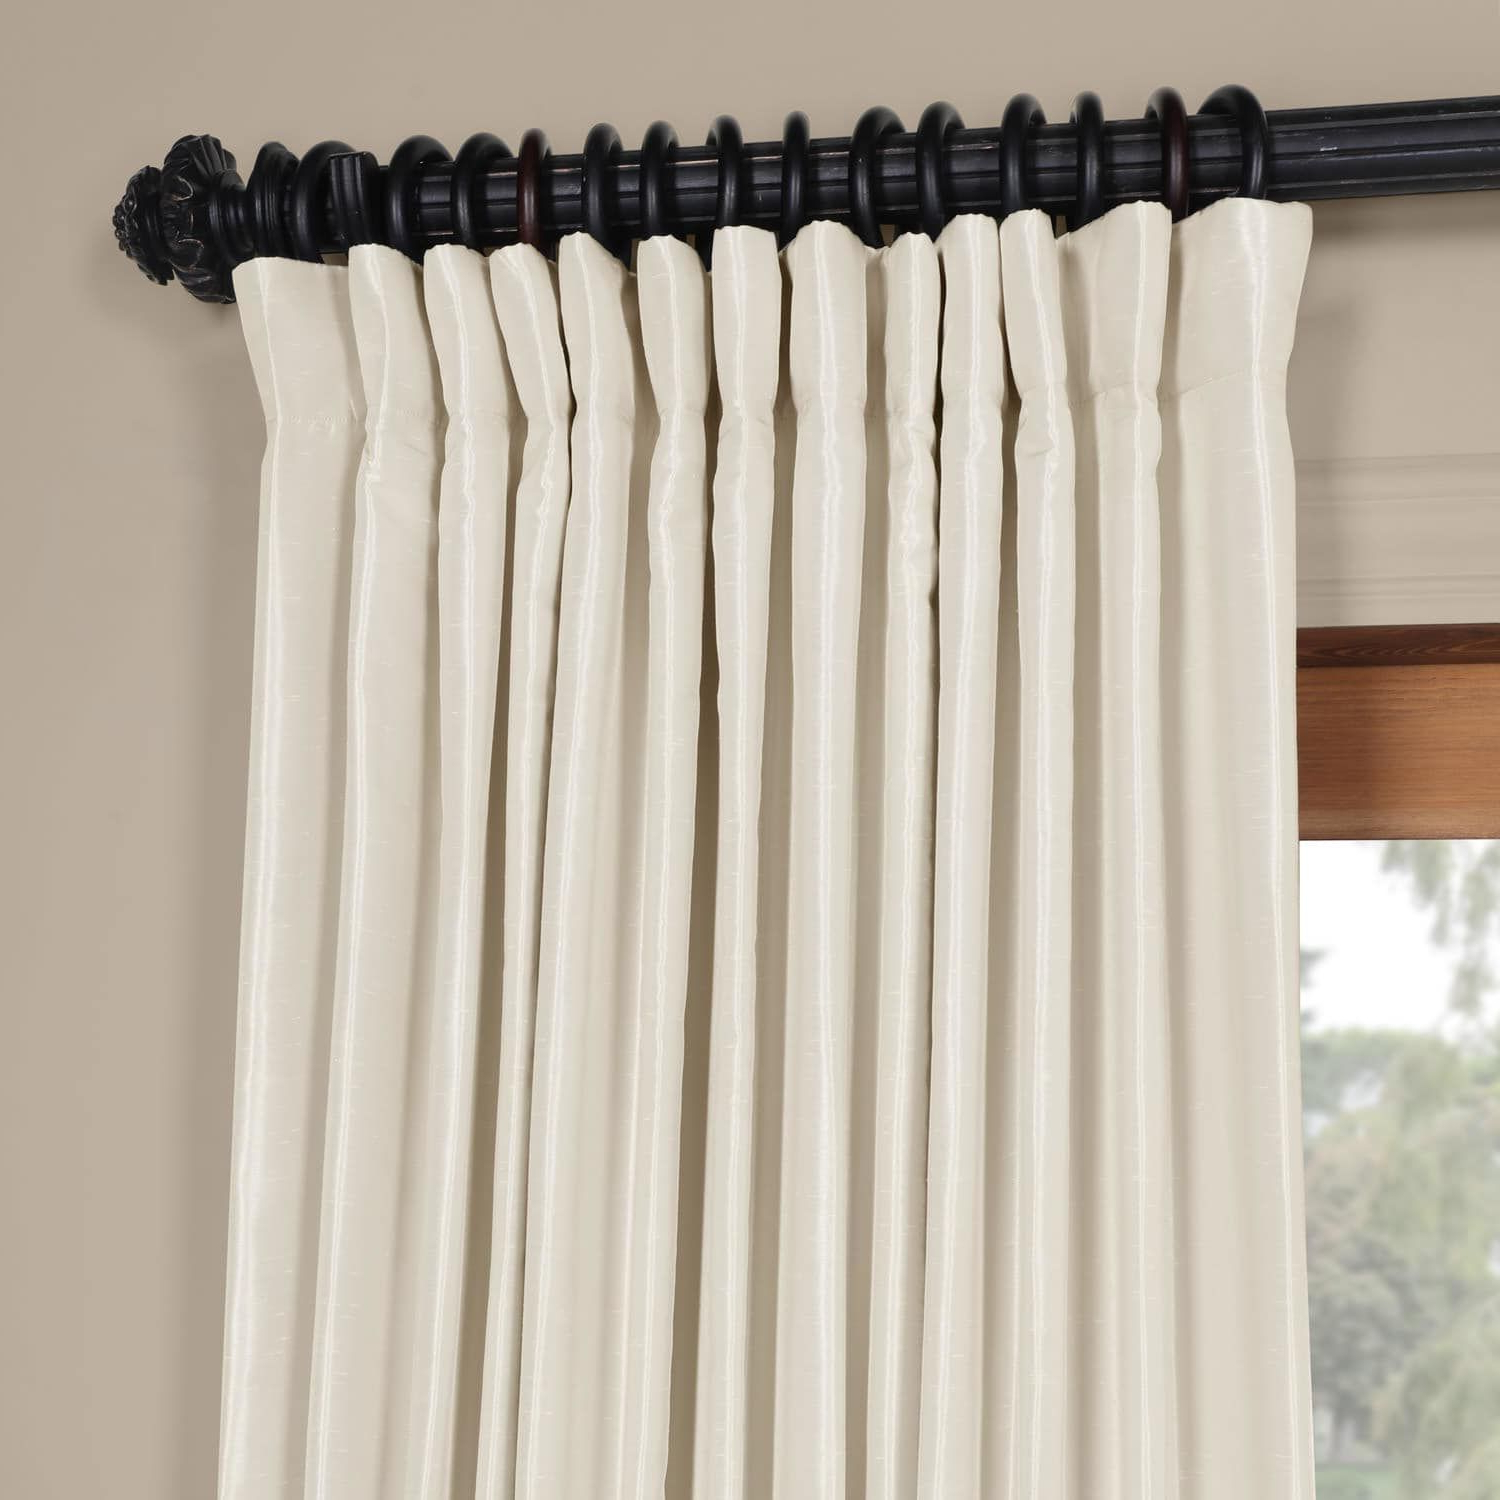 Off White Vintage Faux Textured Silk Curtains Intended For Fashionable Off White Blackout Extra Wide Vintage Textured Faux Dupioni (View 10 of 20)